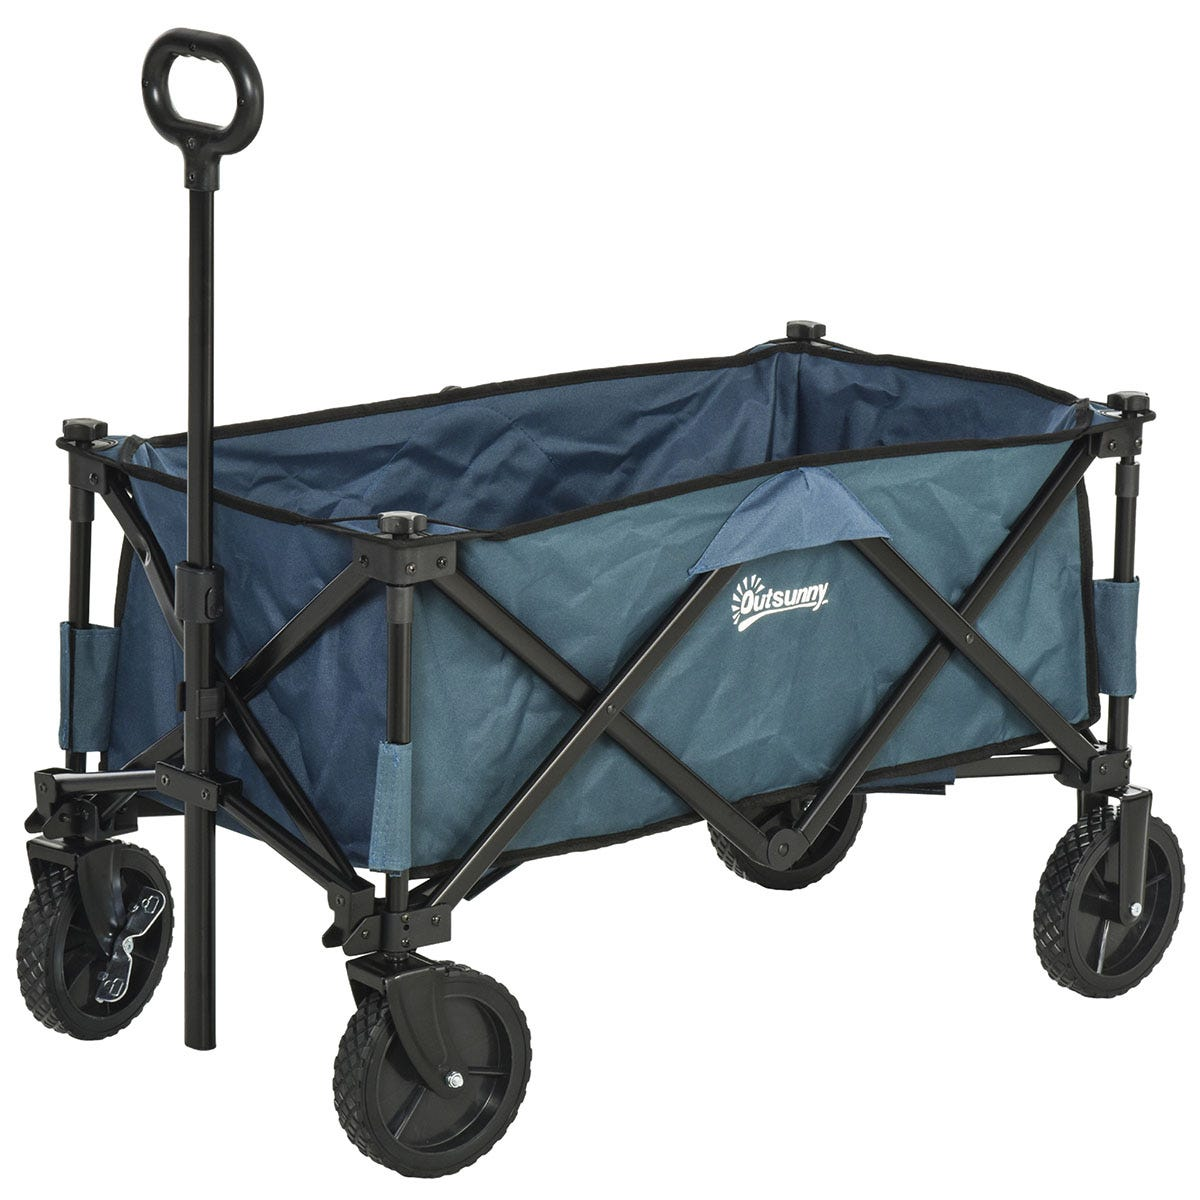 Outsunny Folding Outdoor Garden Storage Trolley Cart with Telescopic Handle & Brakes - Green